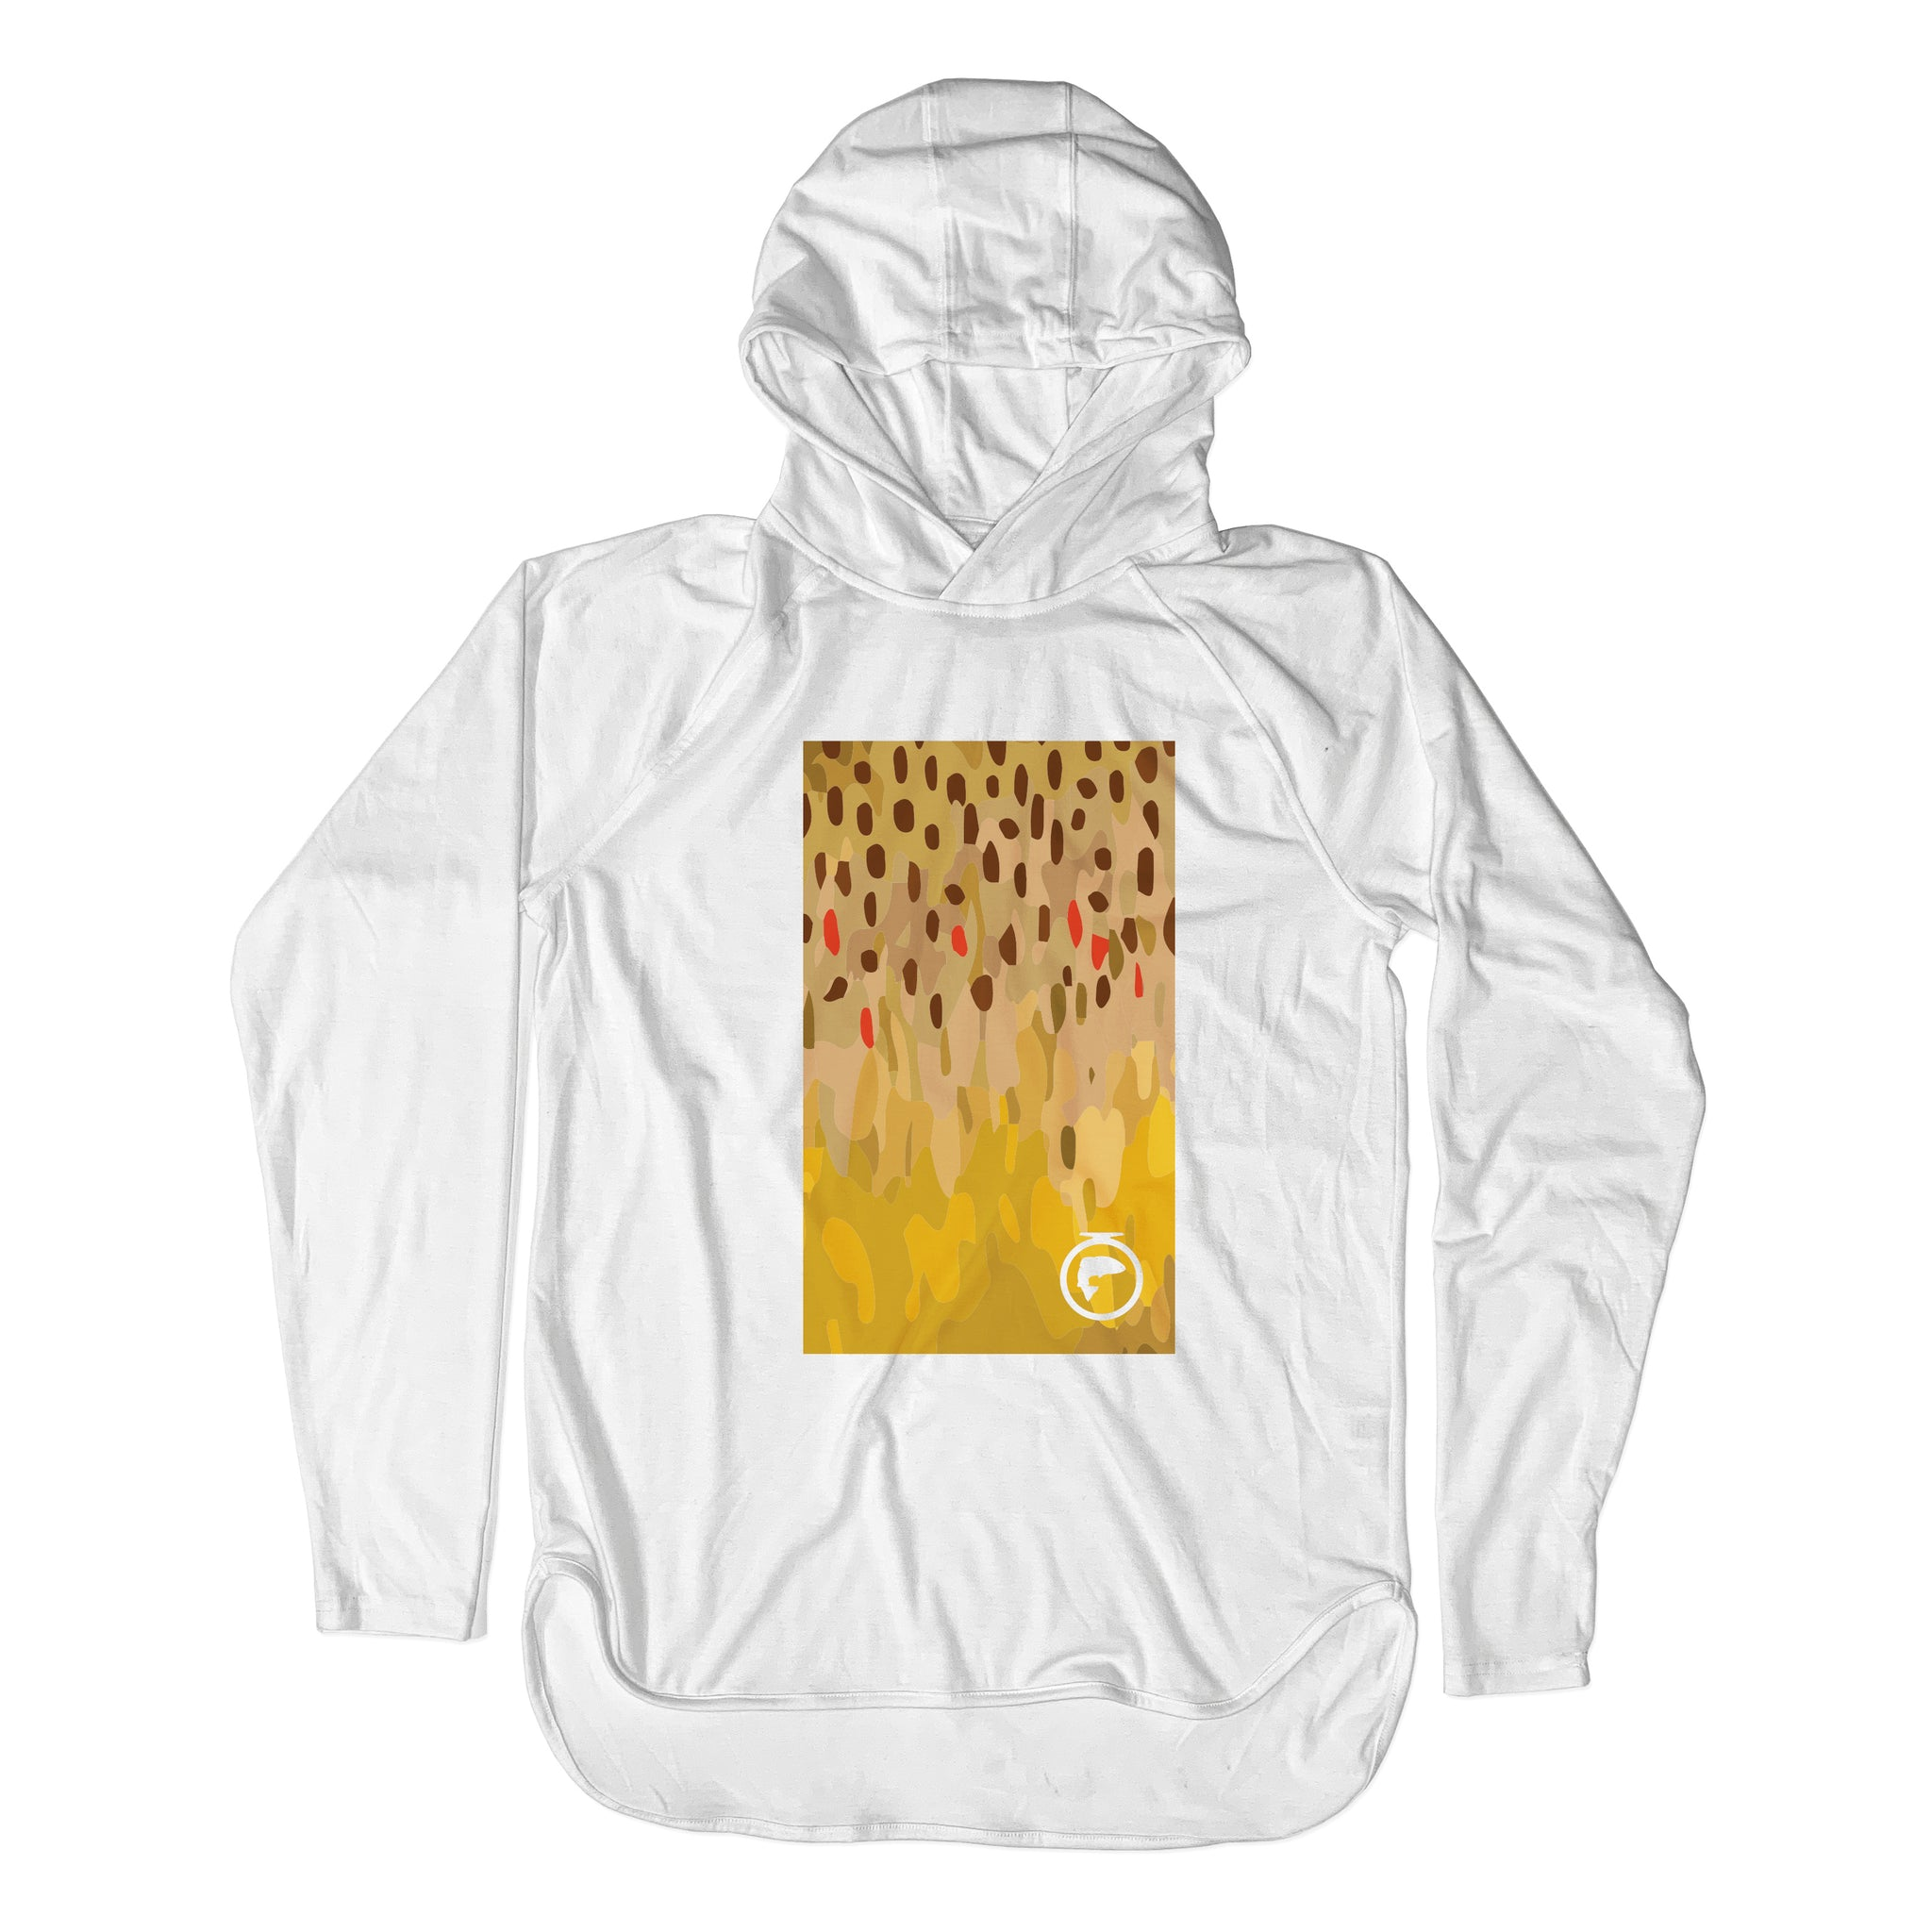 Xtreme Performance Pullover Sun Hoodie - Brown Trout Skin Art - Unisex